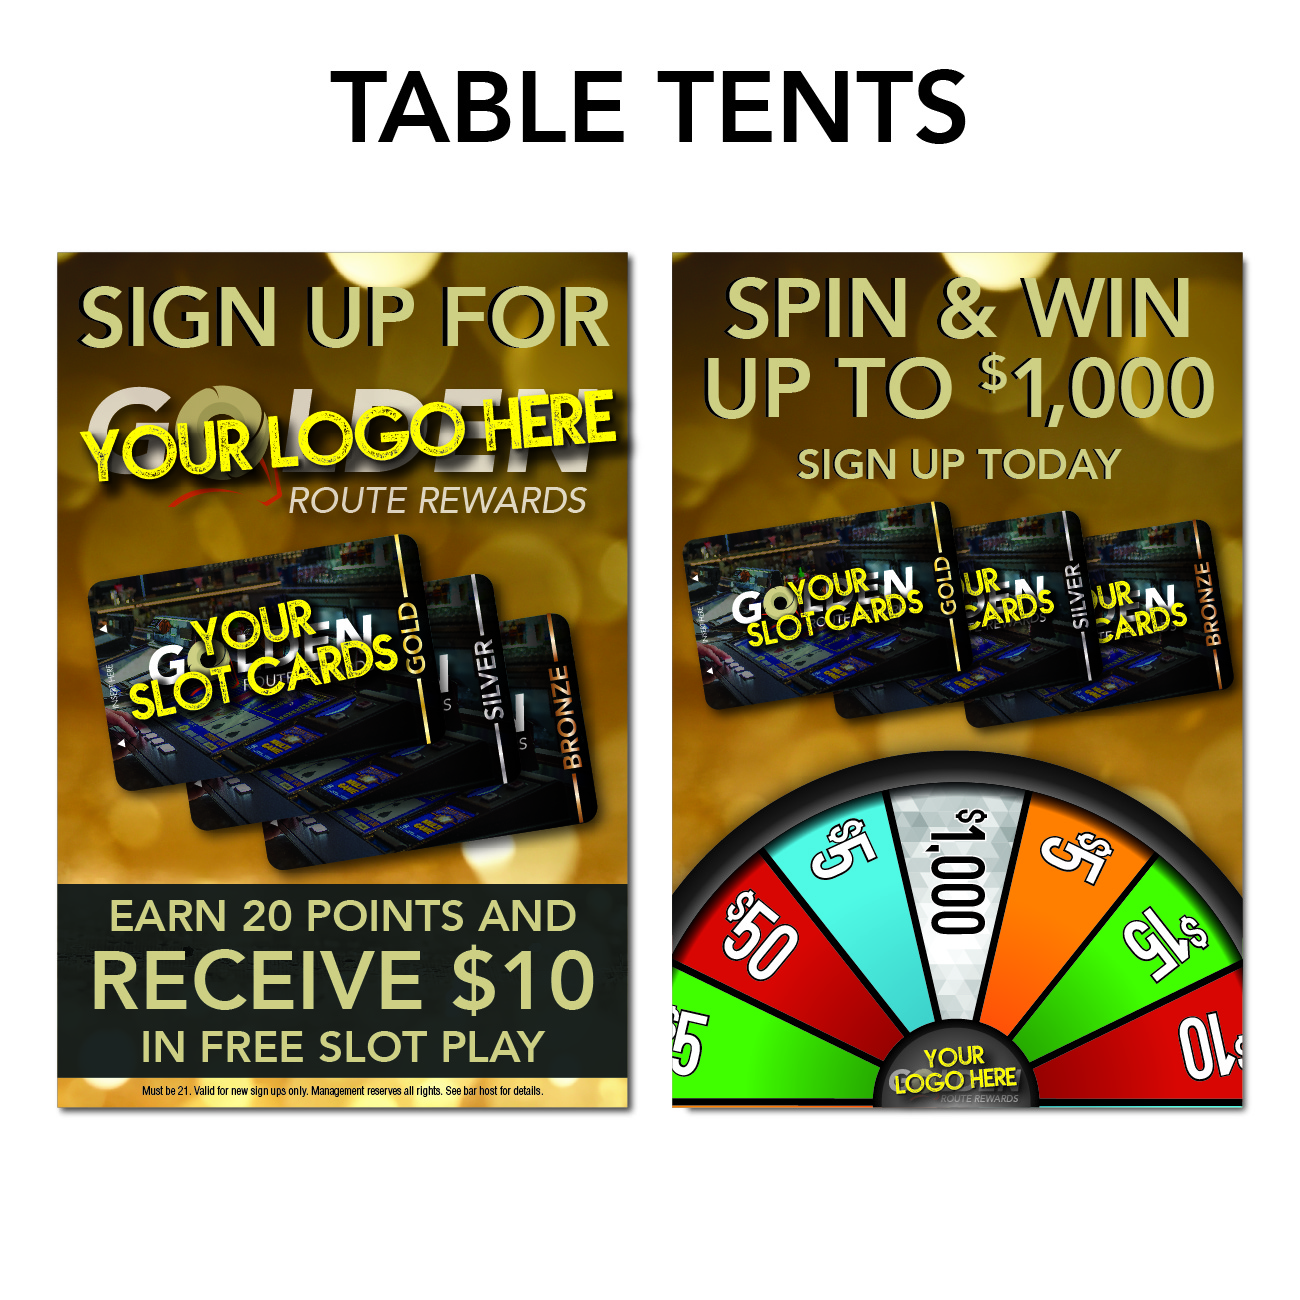 gro route rewards marketing needs table tents